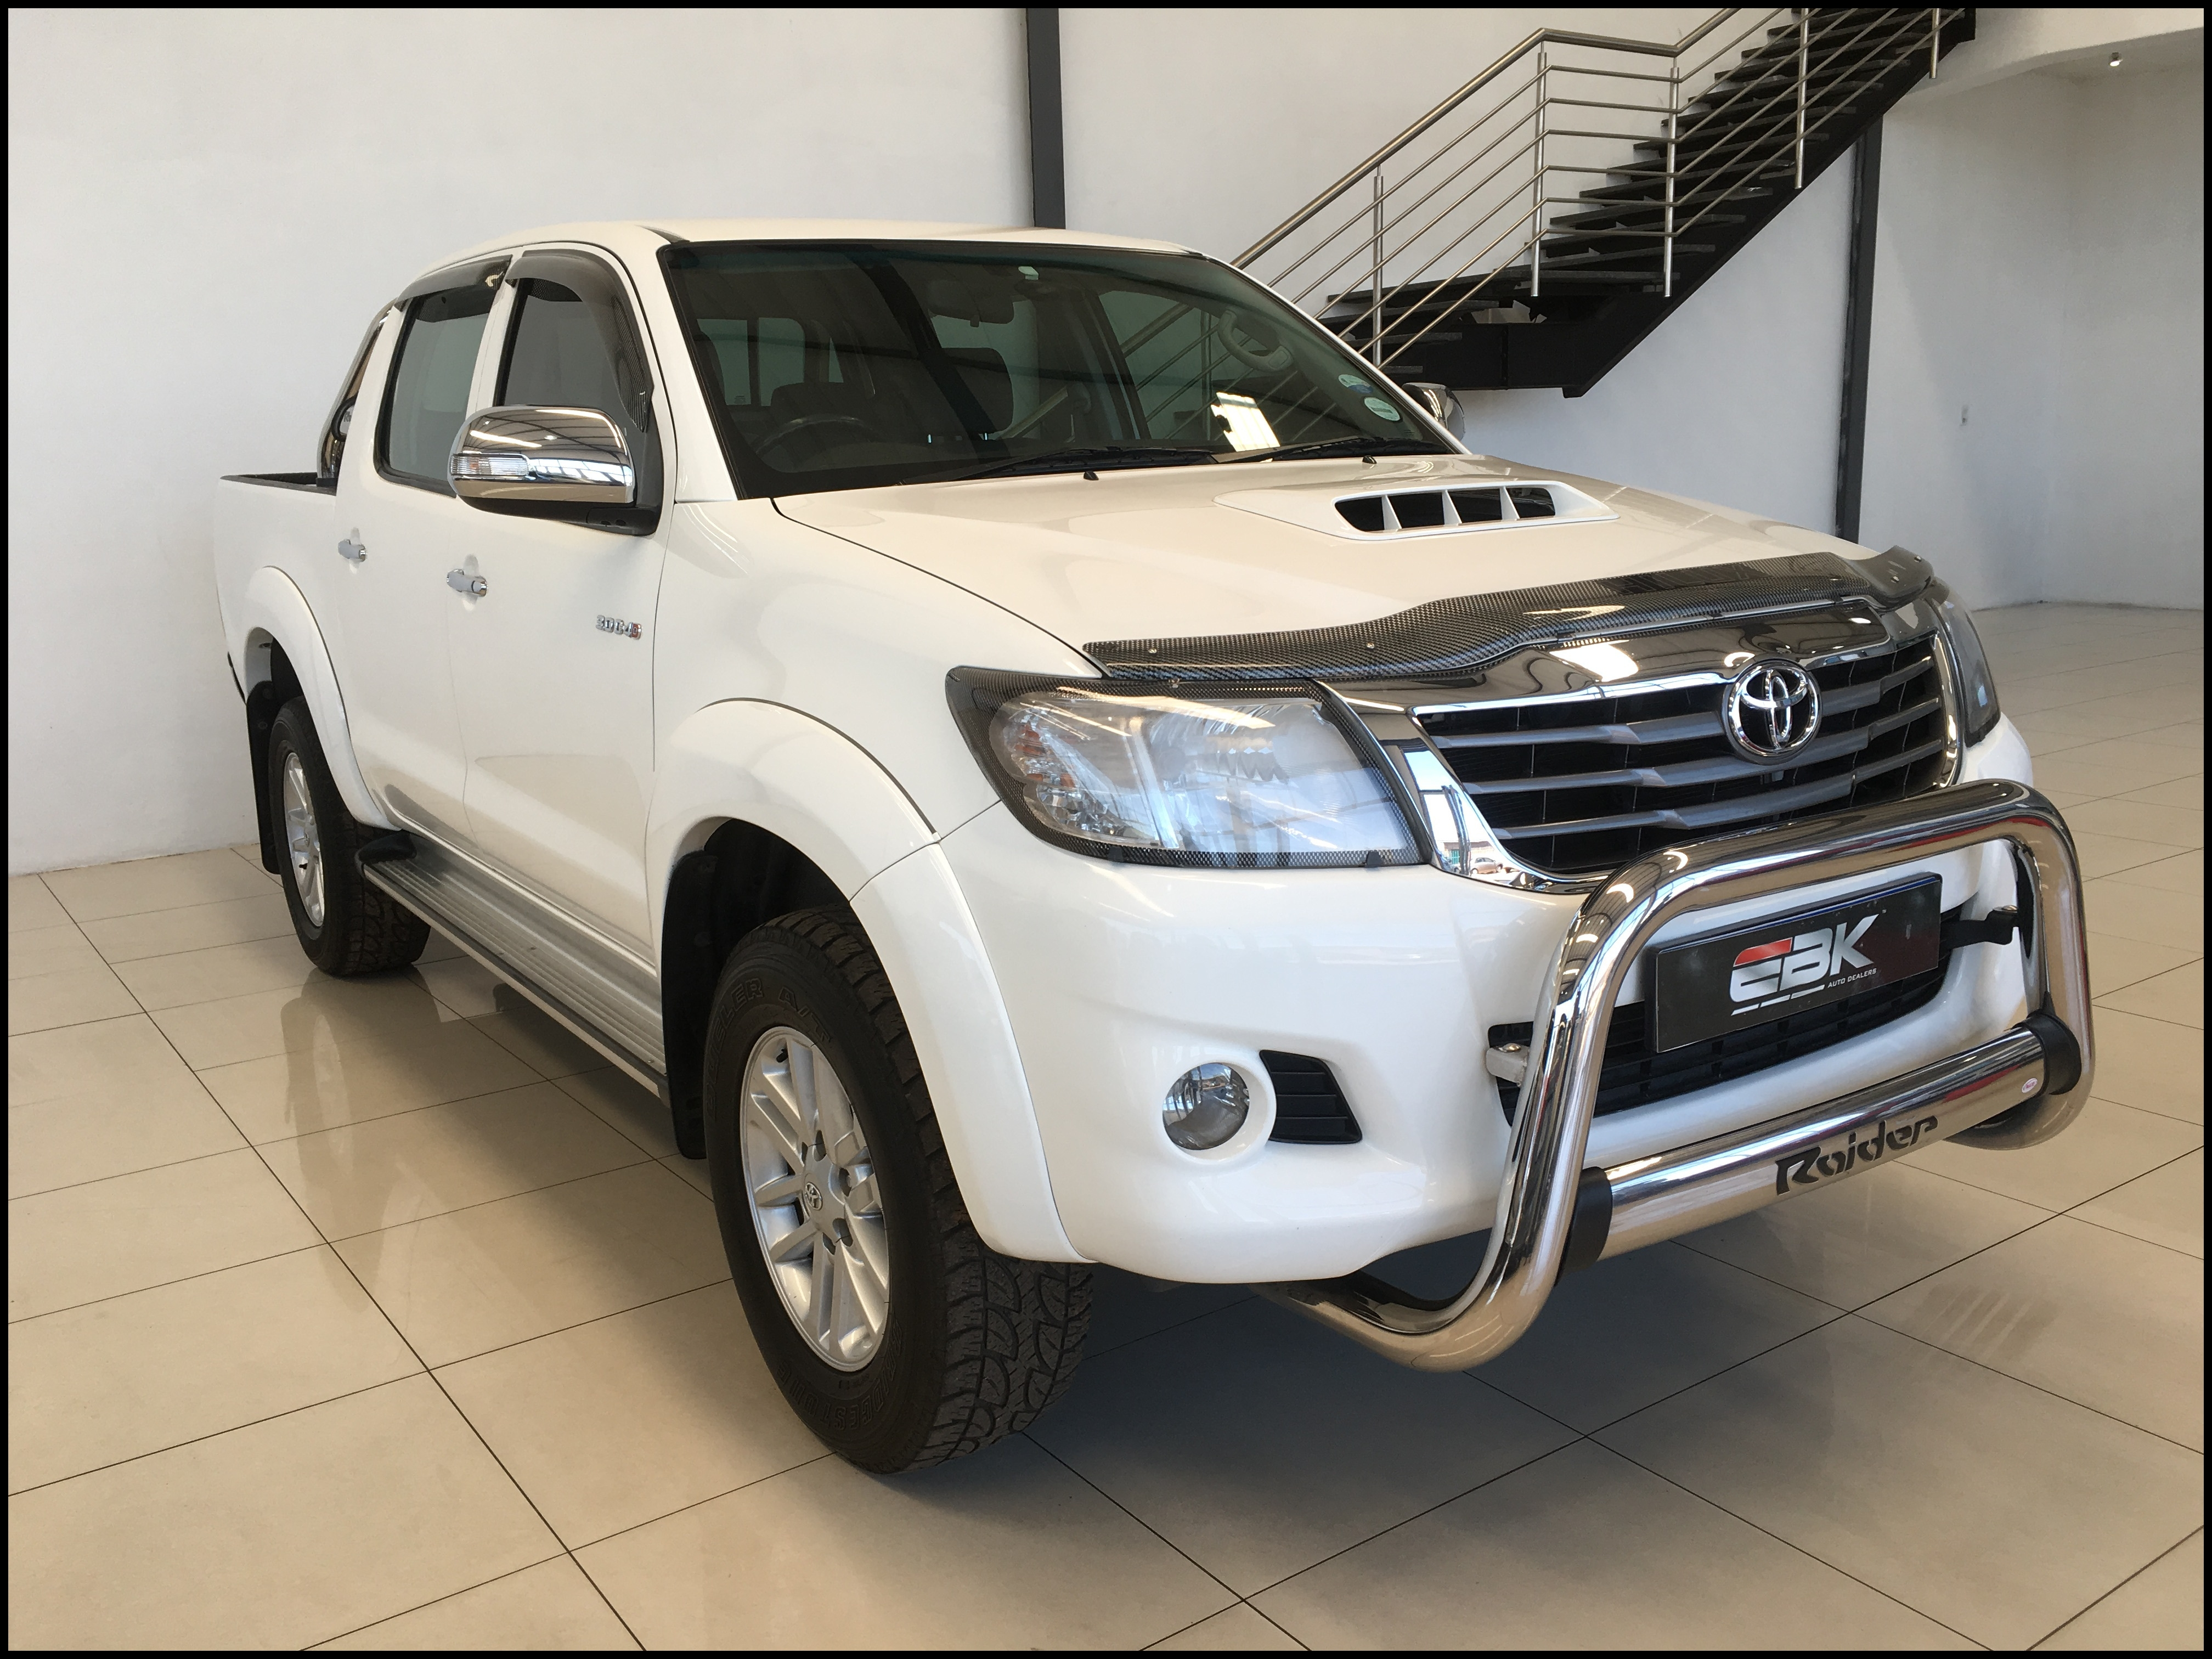 2014 toyota Camry Hot 2013 toyota Hilux Raider 4a 2 3 0d 4d Reviews All